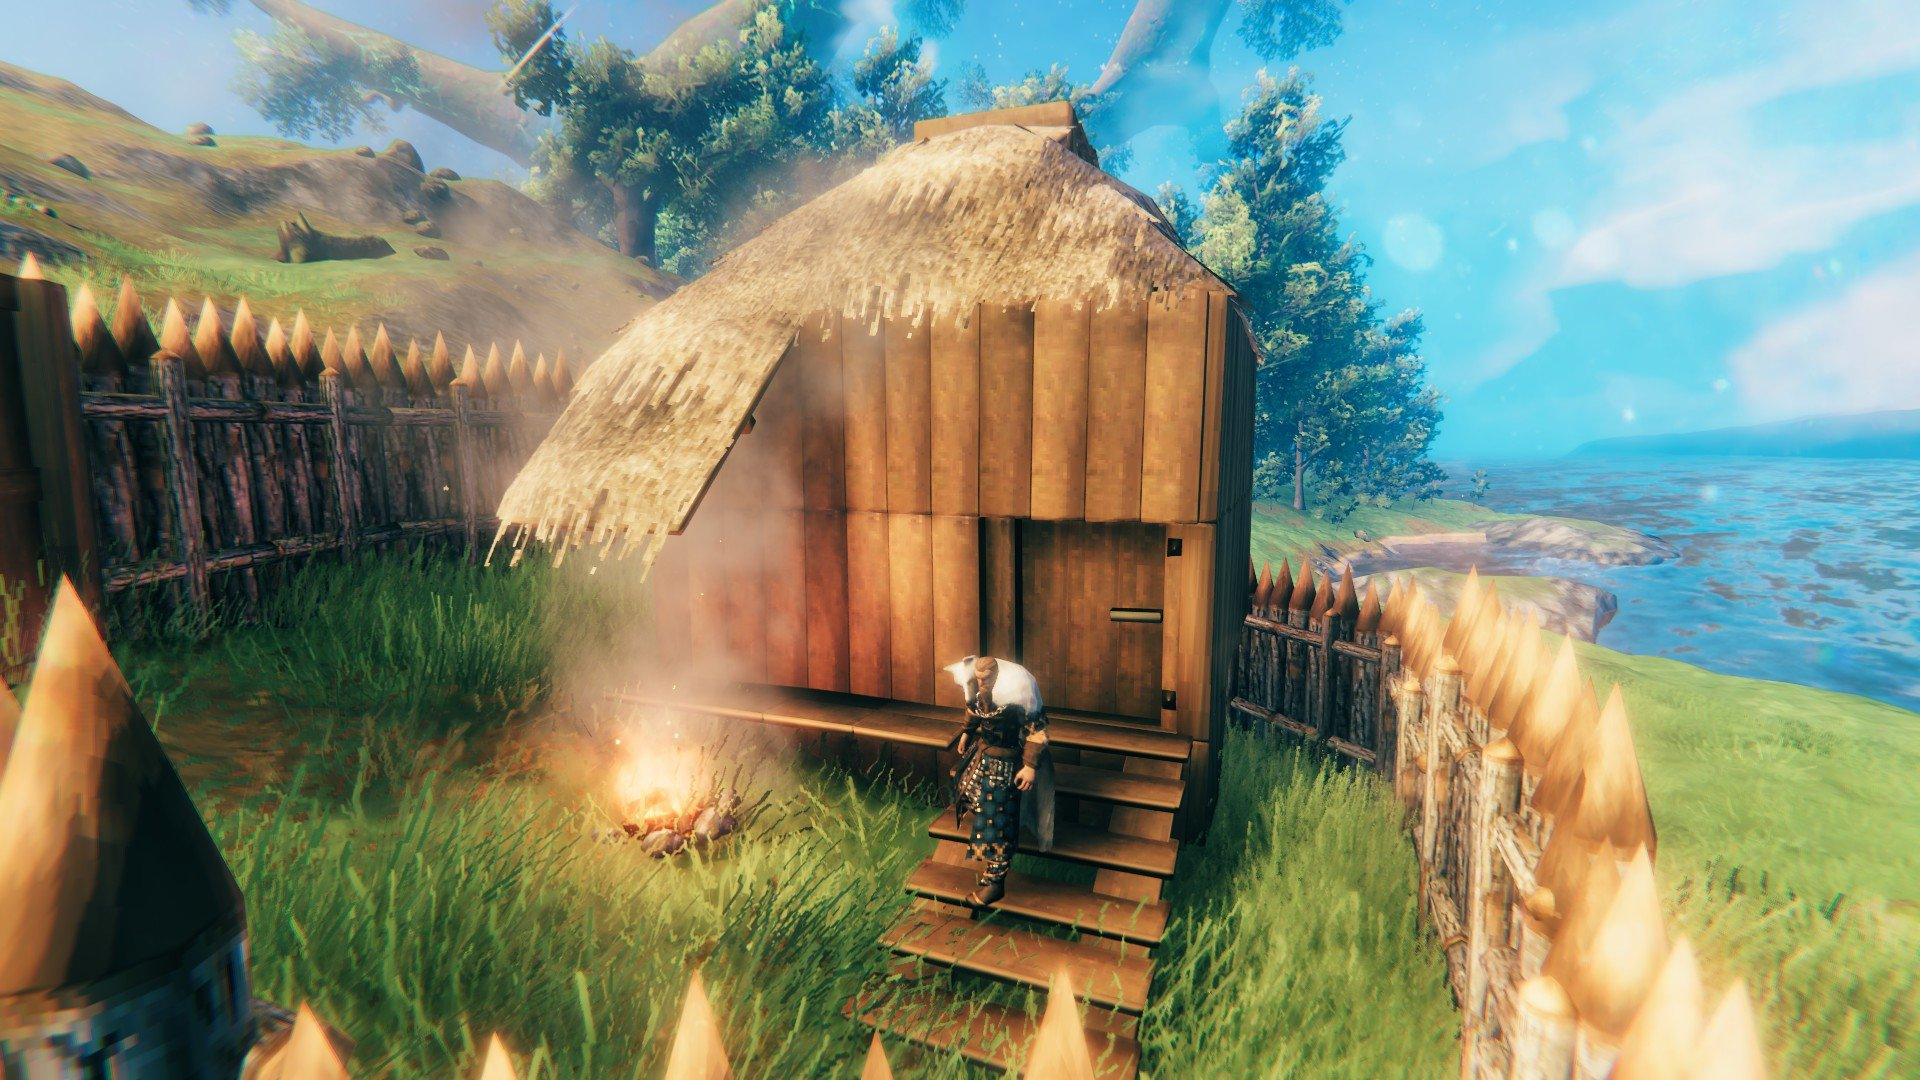 Valheim Crafting Station Needs A Roof Fix Slyther Games